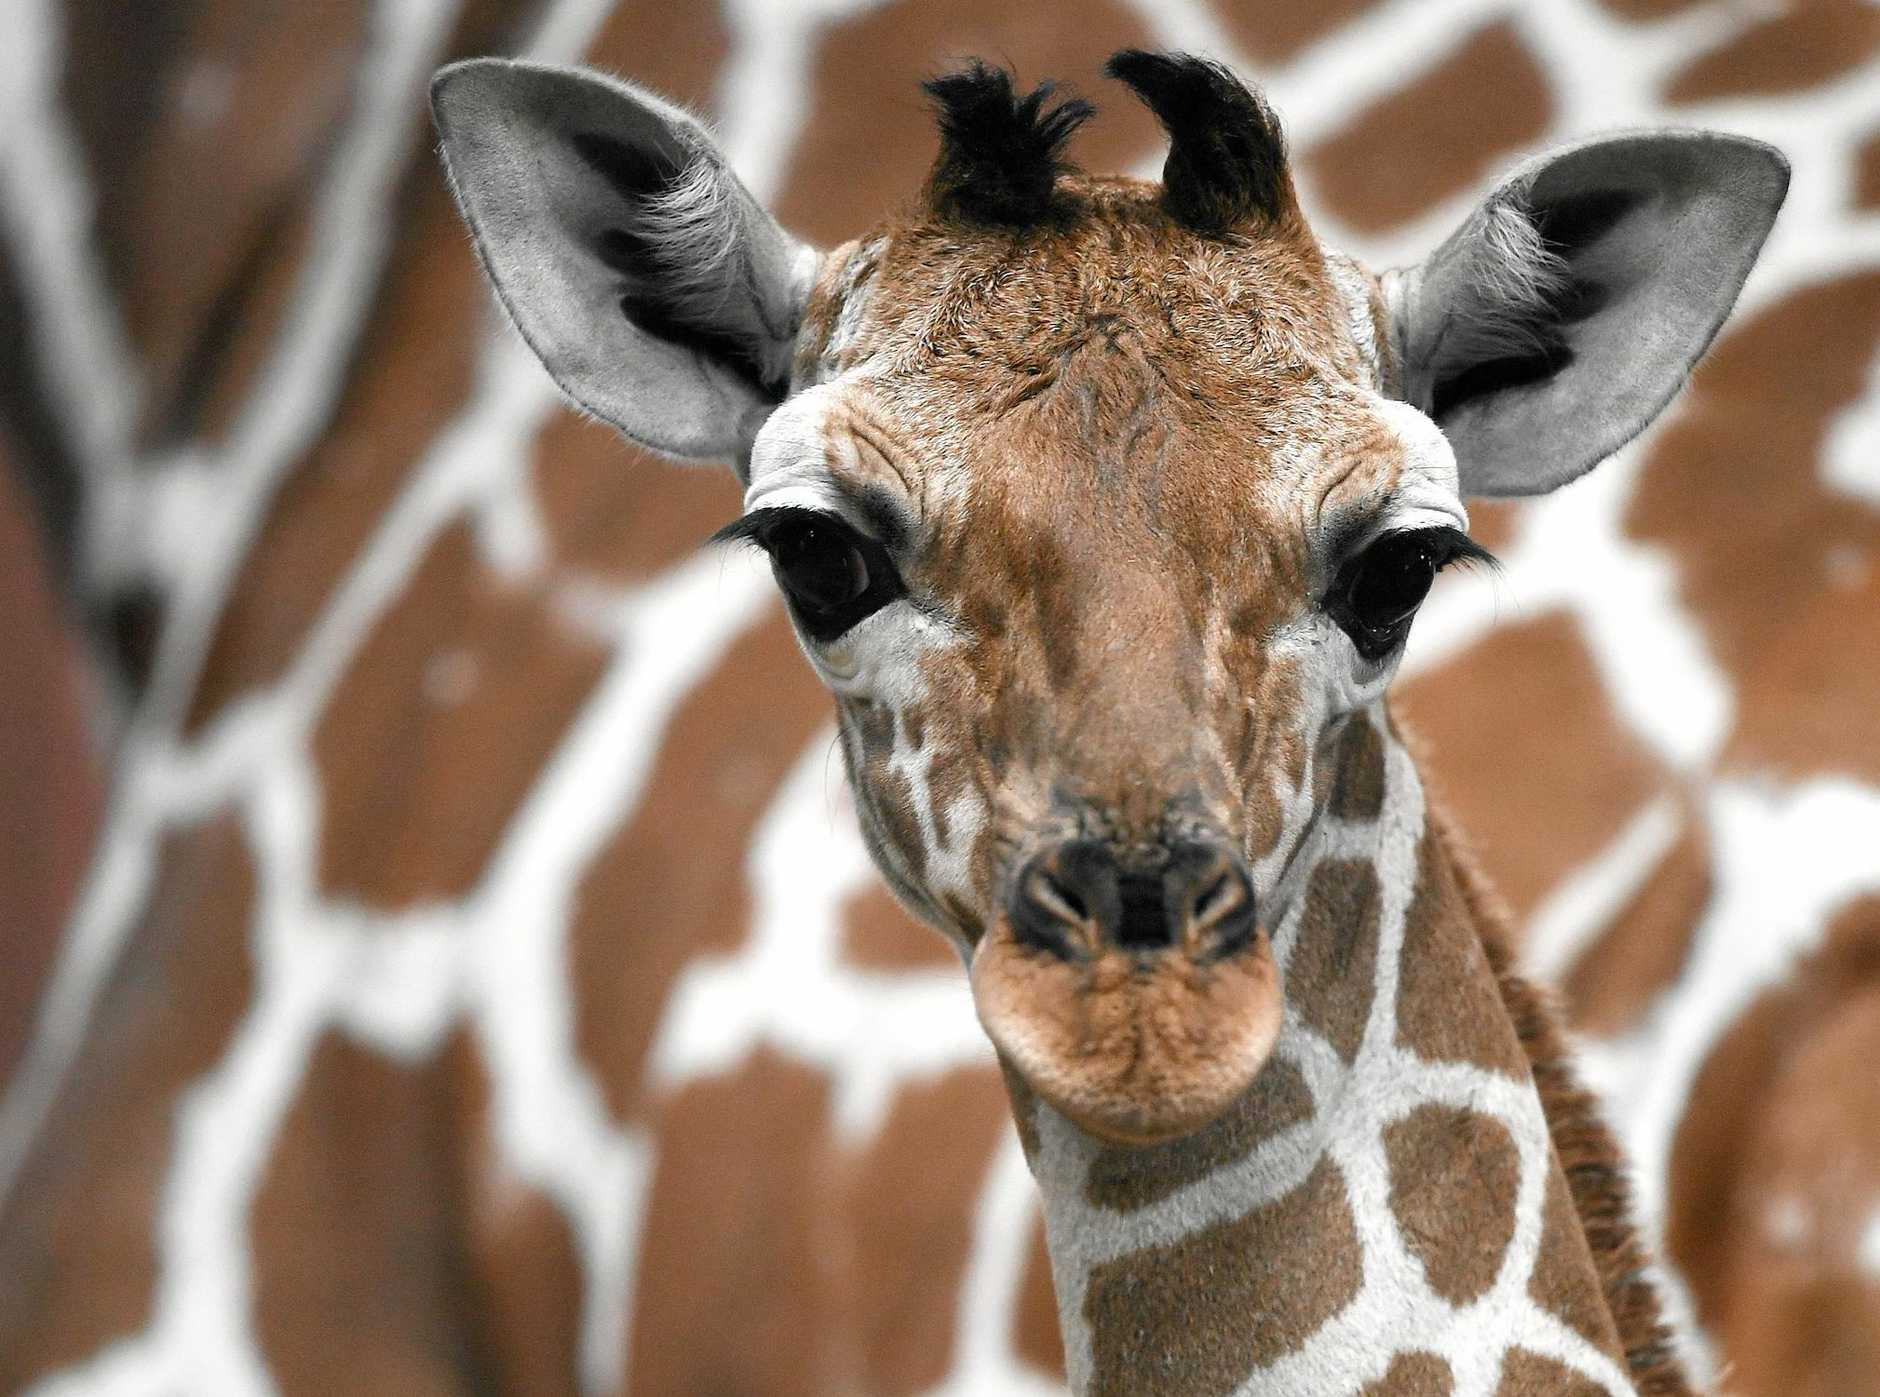 Giraffe numbers have fallen dramatically since the 1980s.